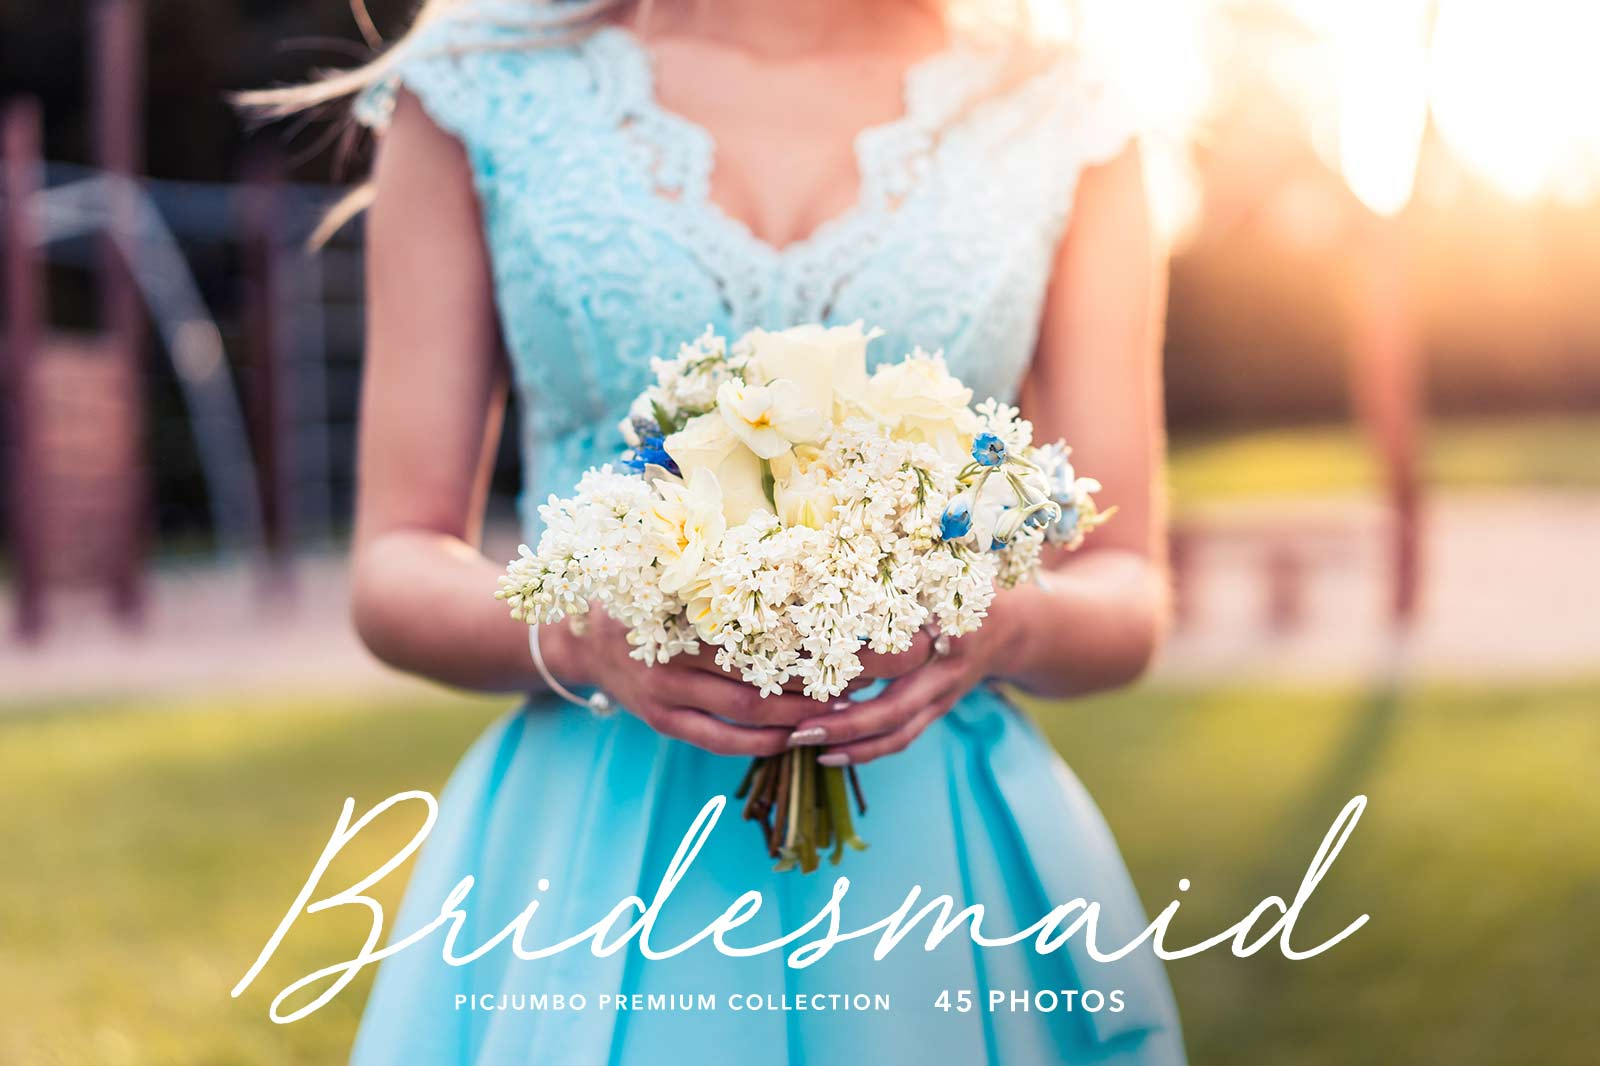 Bridesmaid — get it now in picjumbo PREMIUM!